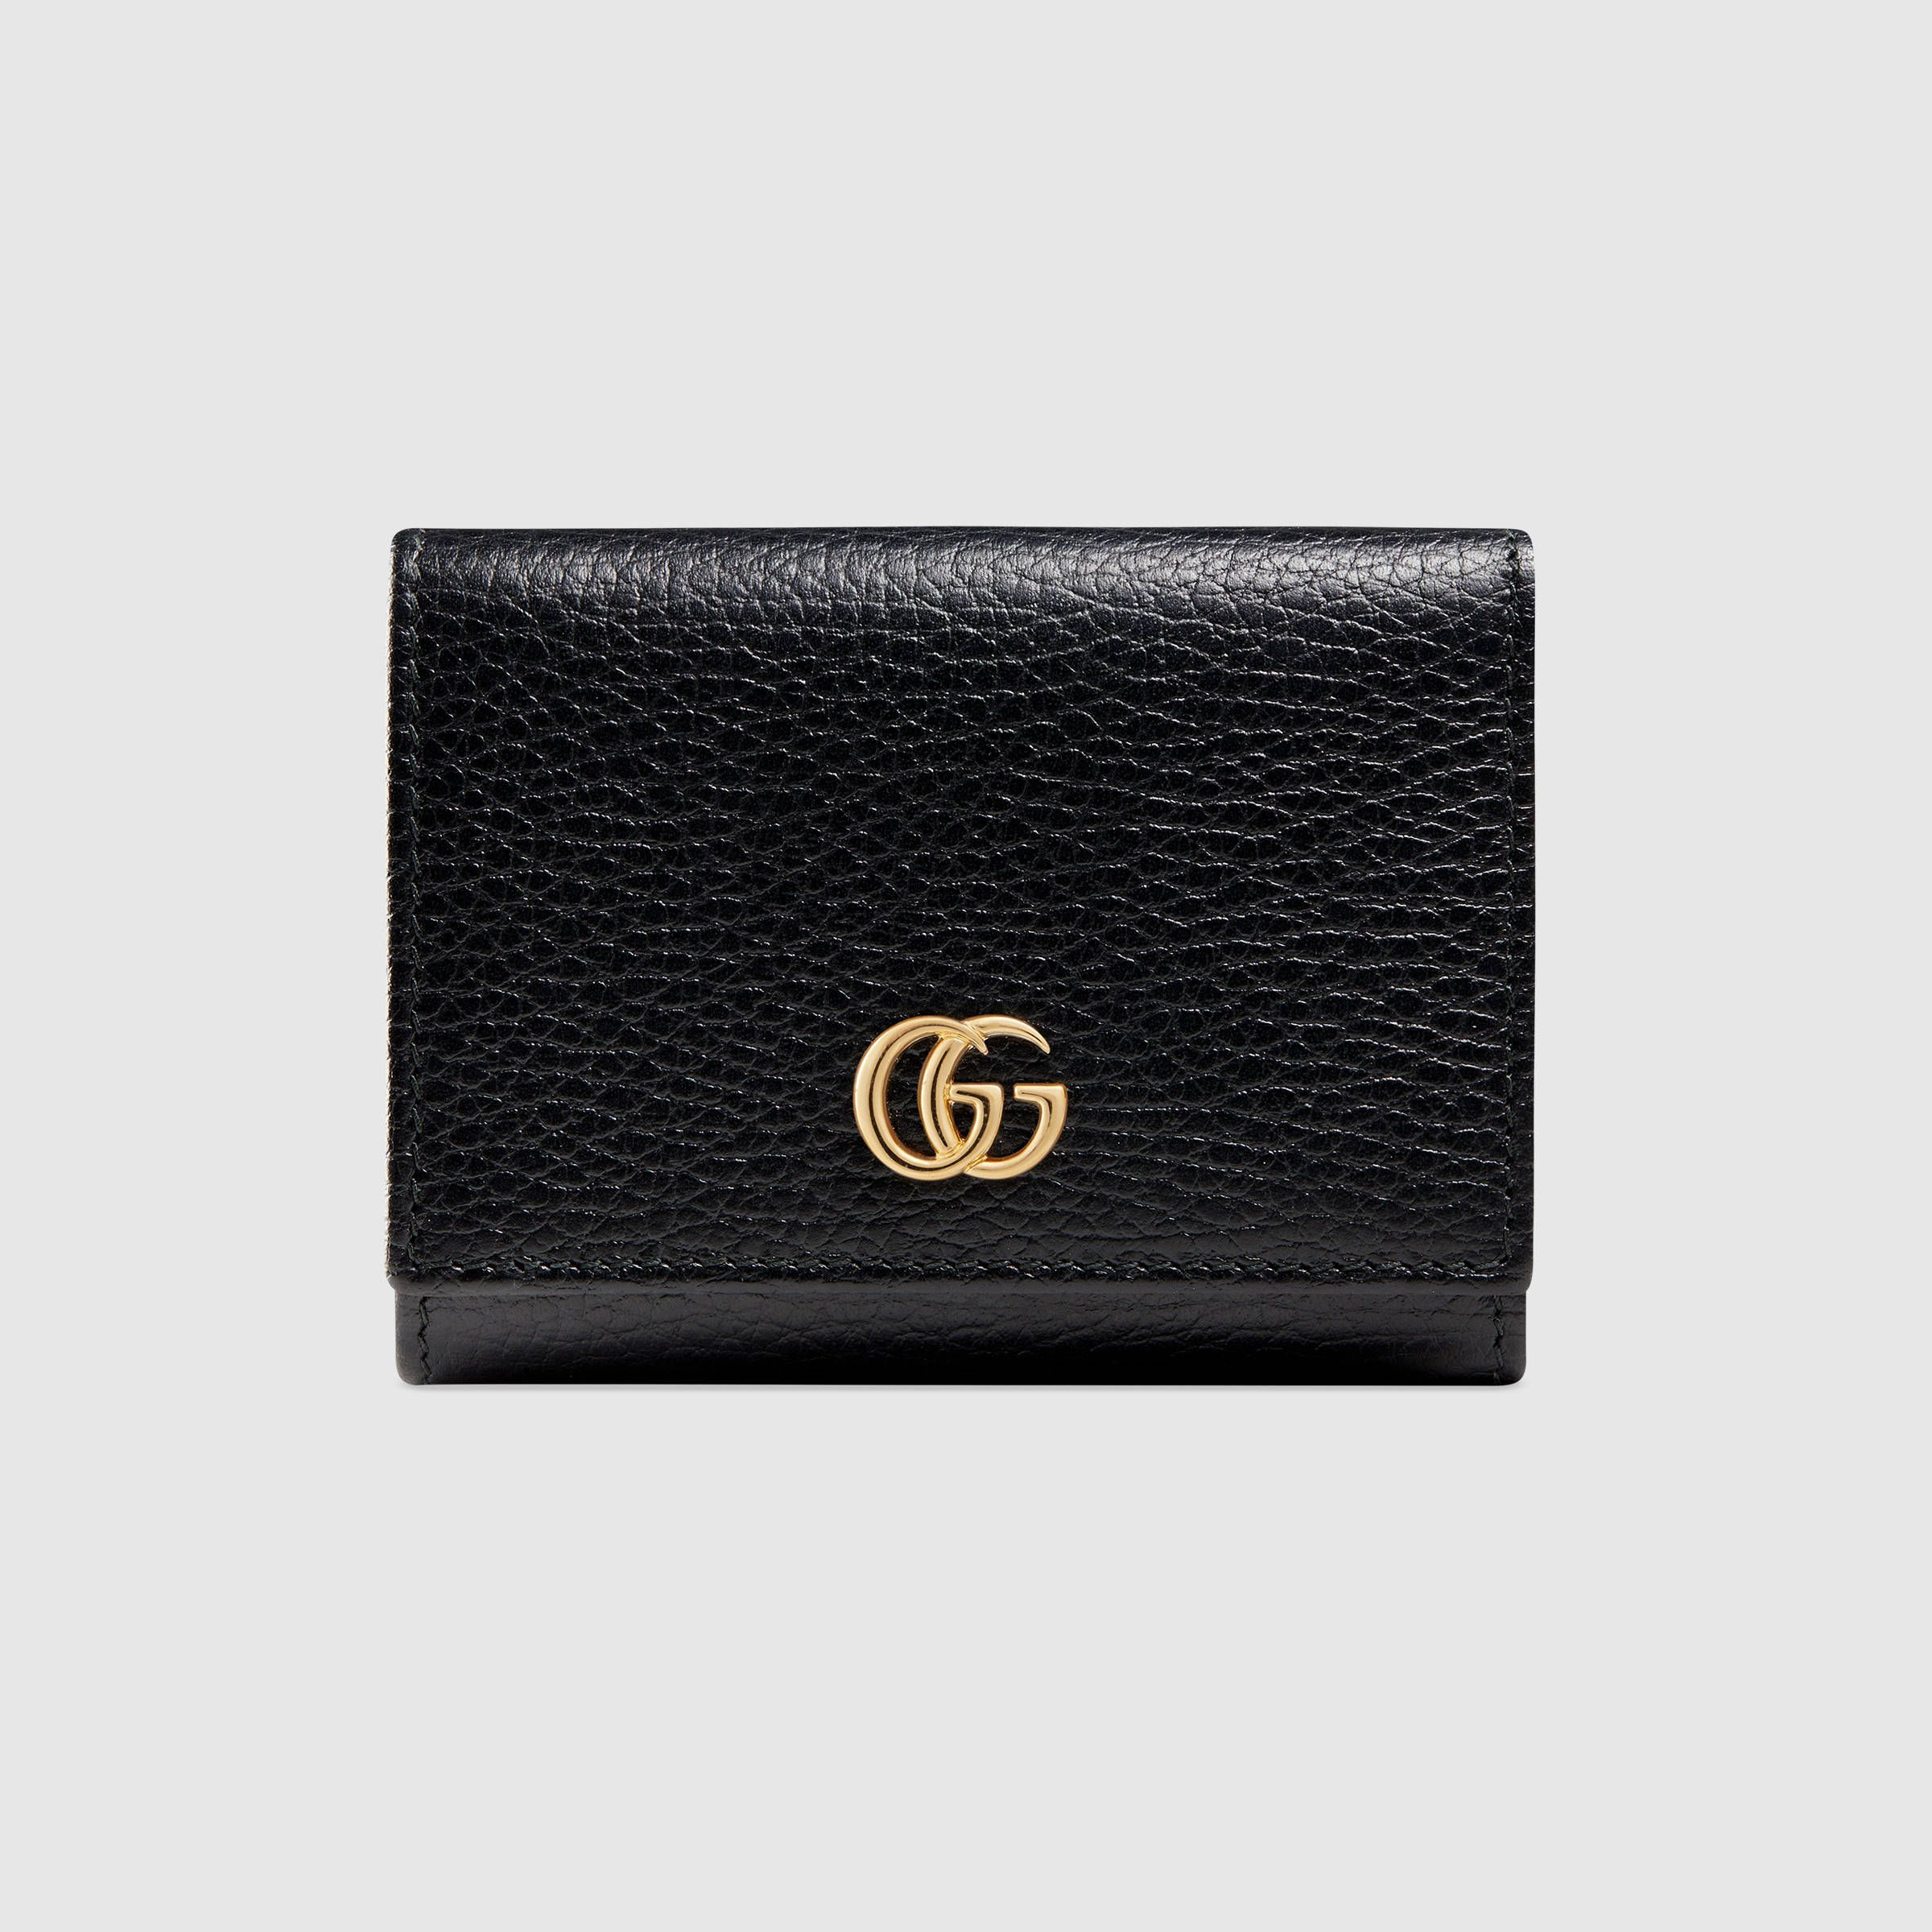 GG Marmont leather wallet in 2019  426daa13e5